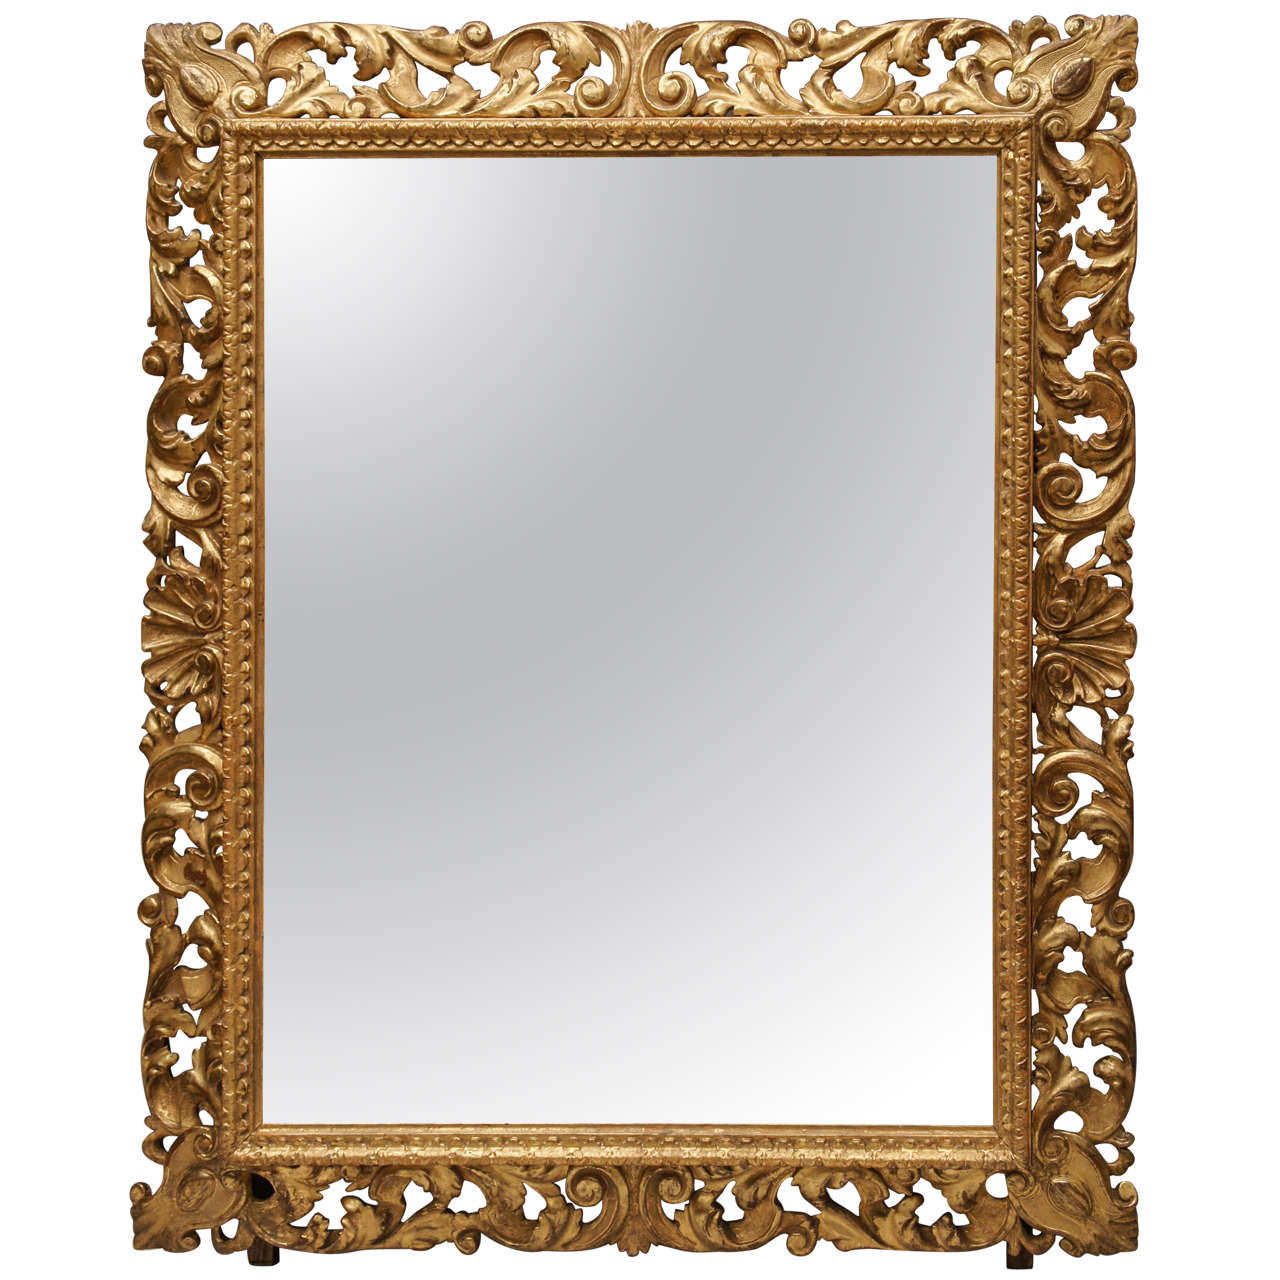 florentine style carved gilt wood frame mirror at 1stdibs